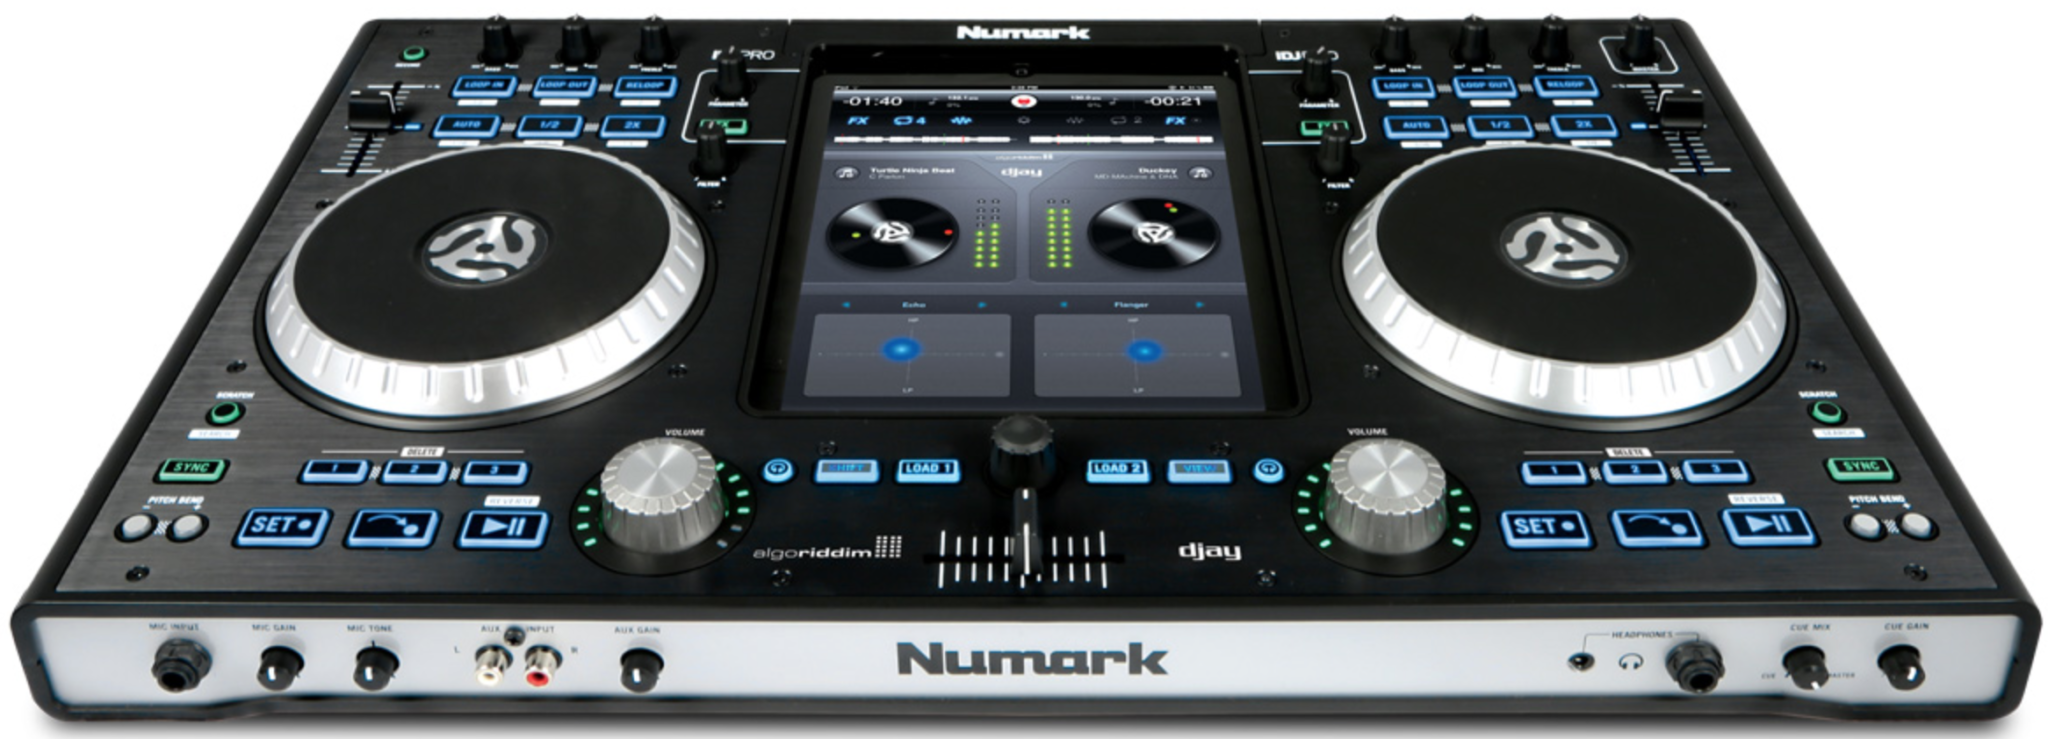 instructions for digital dj pro Use the link below to download the latest user manual for djay pro for mac: djay  pro 2 mac manualpdf (218 mb) djay pro 2 mac manual.